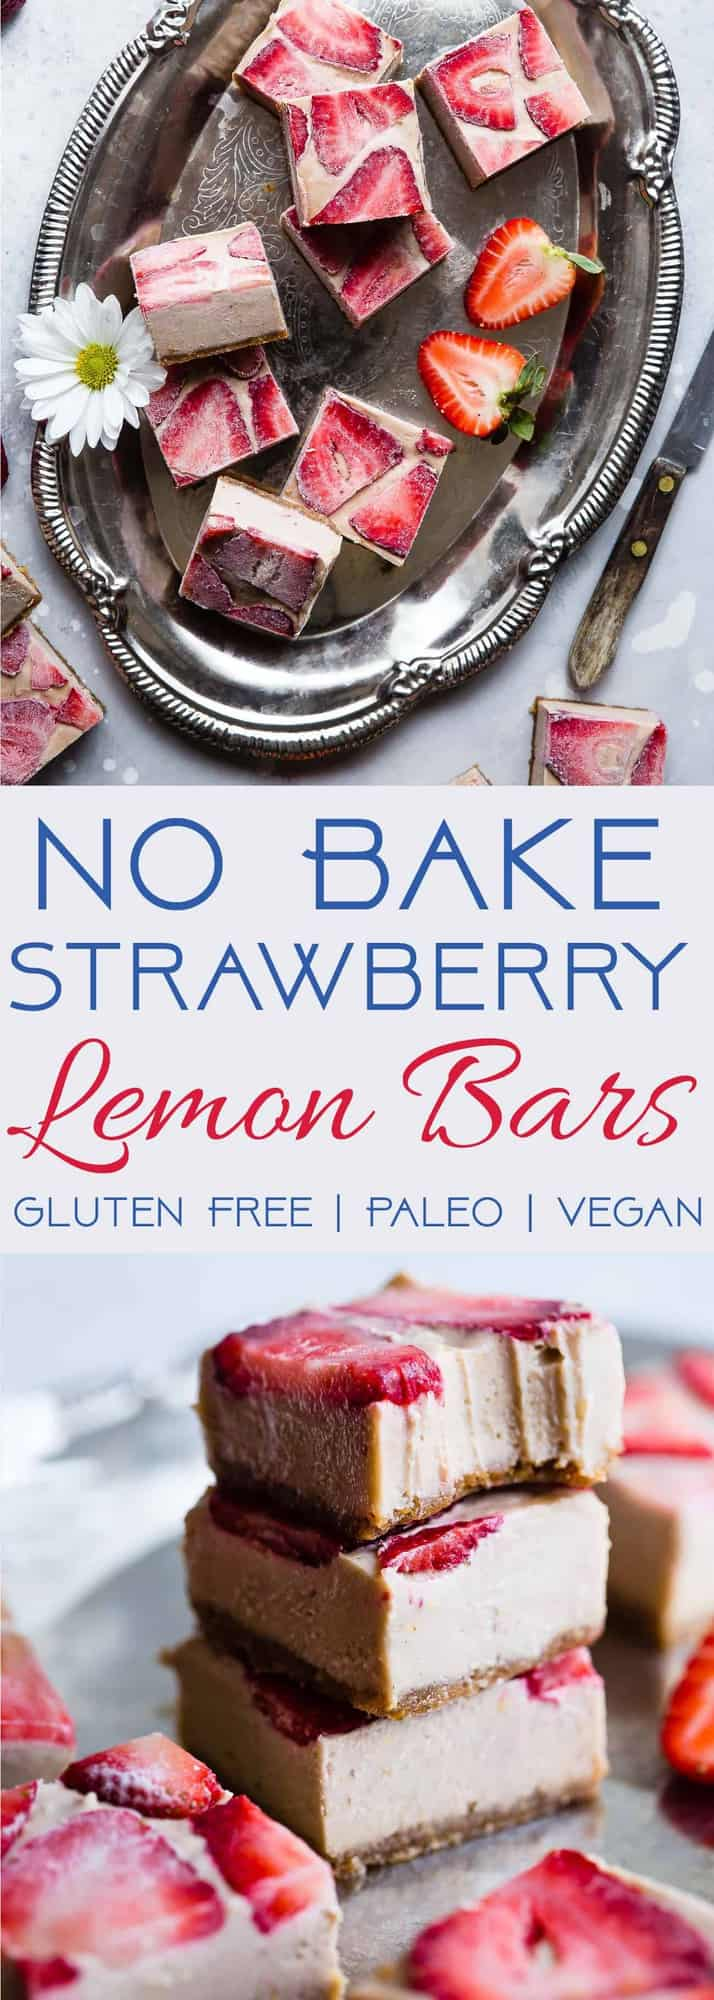 No Bake Strawberry Cashew Paleo Lemon Bars - This EASY vegan lemon bar recipe has the flavor of sweet strawberries and creamy cashews with zippy lemon! A healthy, paleo friendly, dairy free treat for the summer! | #Foodfaithfitness | #Dairyfree #Paleo #Vegan #Glutenfree #Nobake